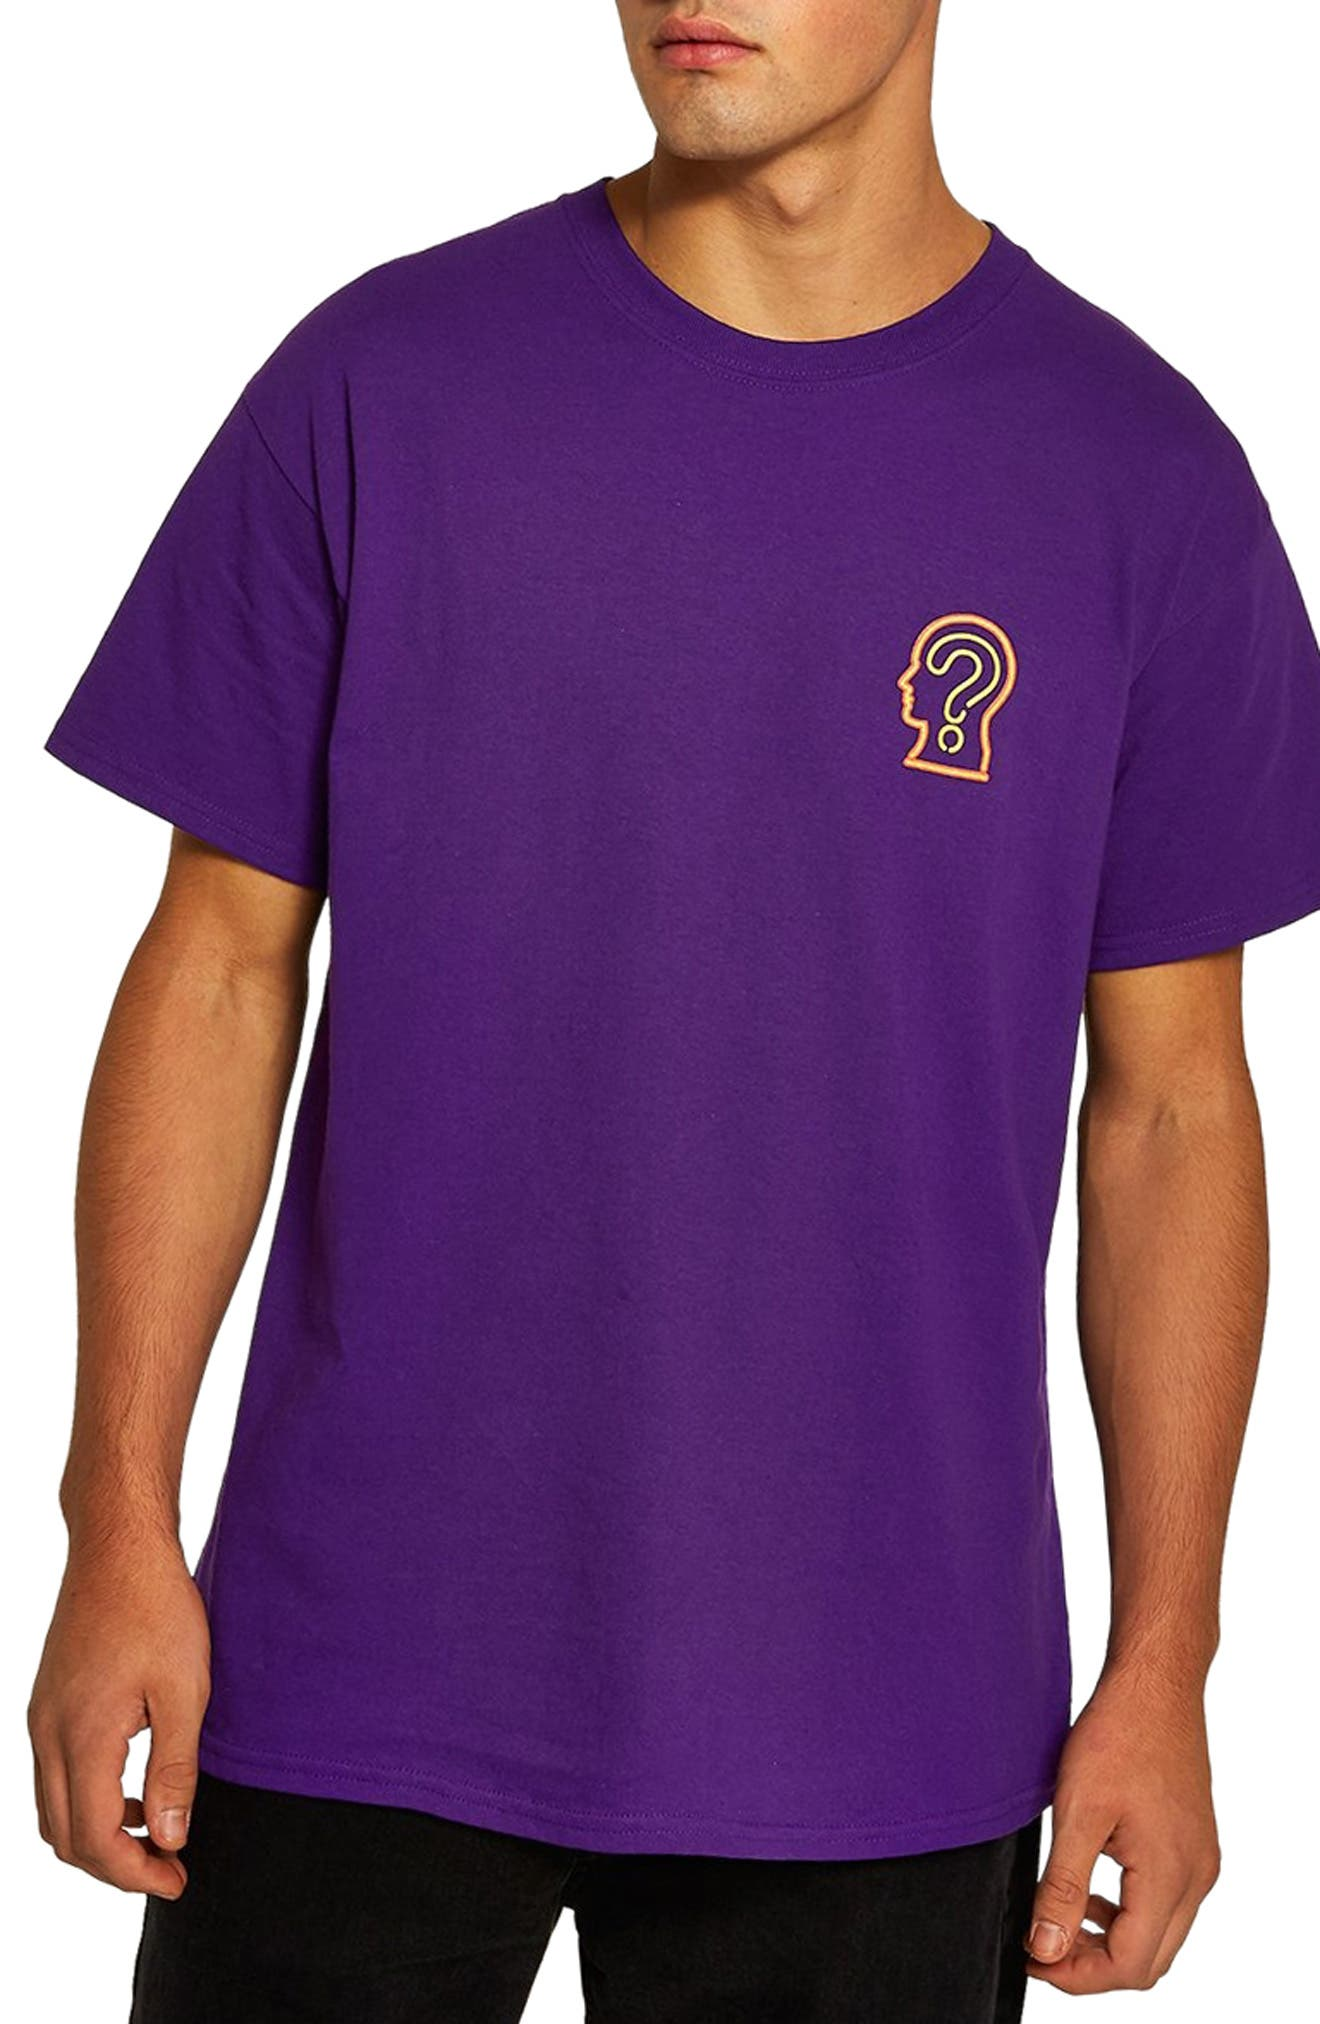 On Your Mind Graphic T-Shirt,                         Main,                         color, PURPLE MULTI